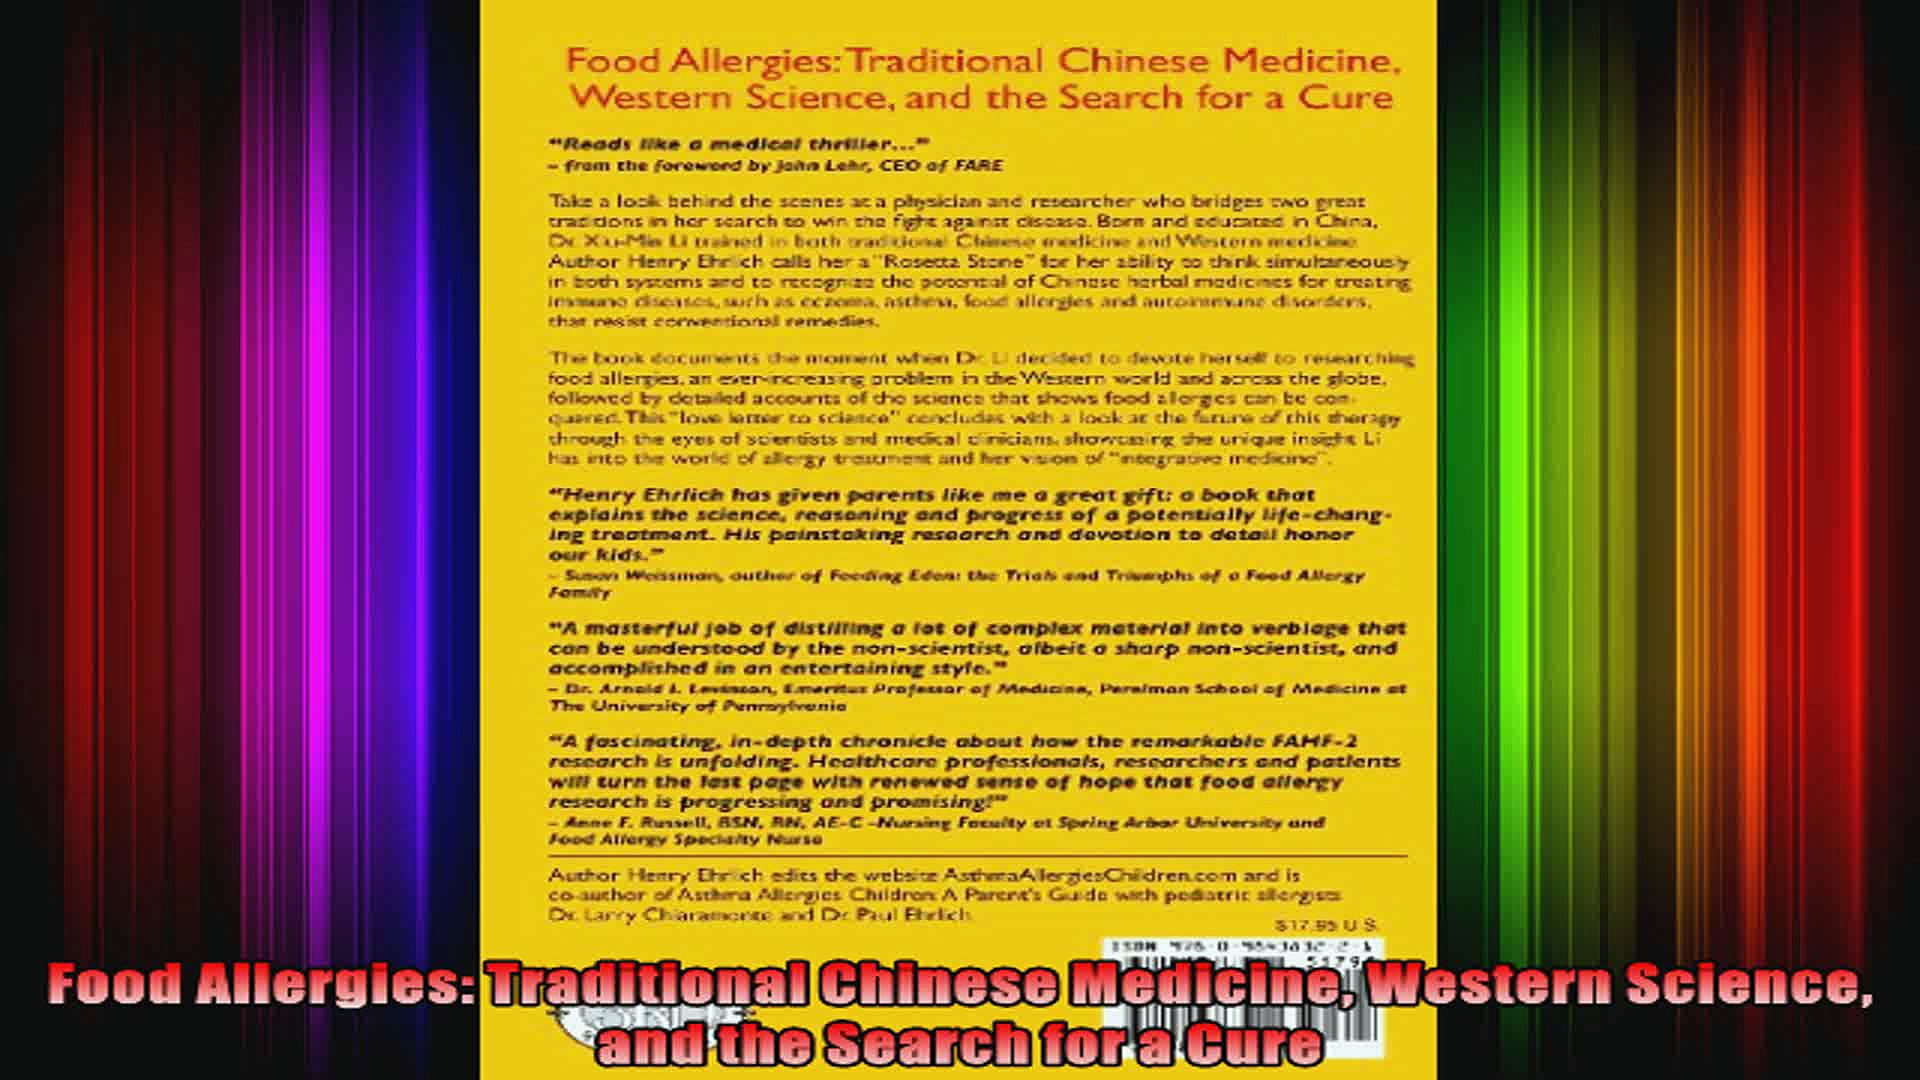 Food Allergies Traditional Chinese Medicine Western Science and the Search for a Cure